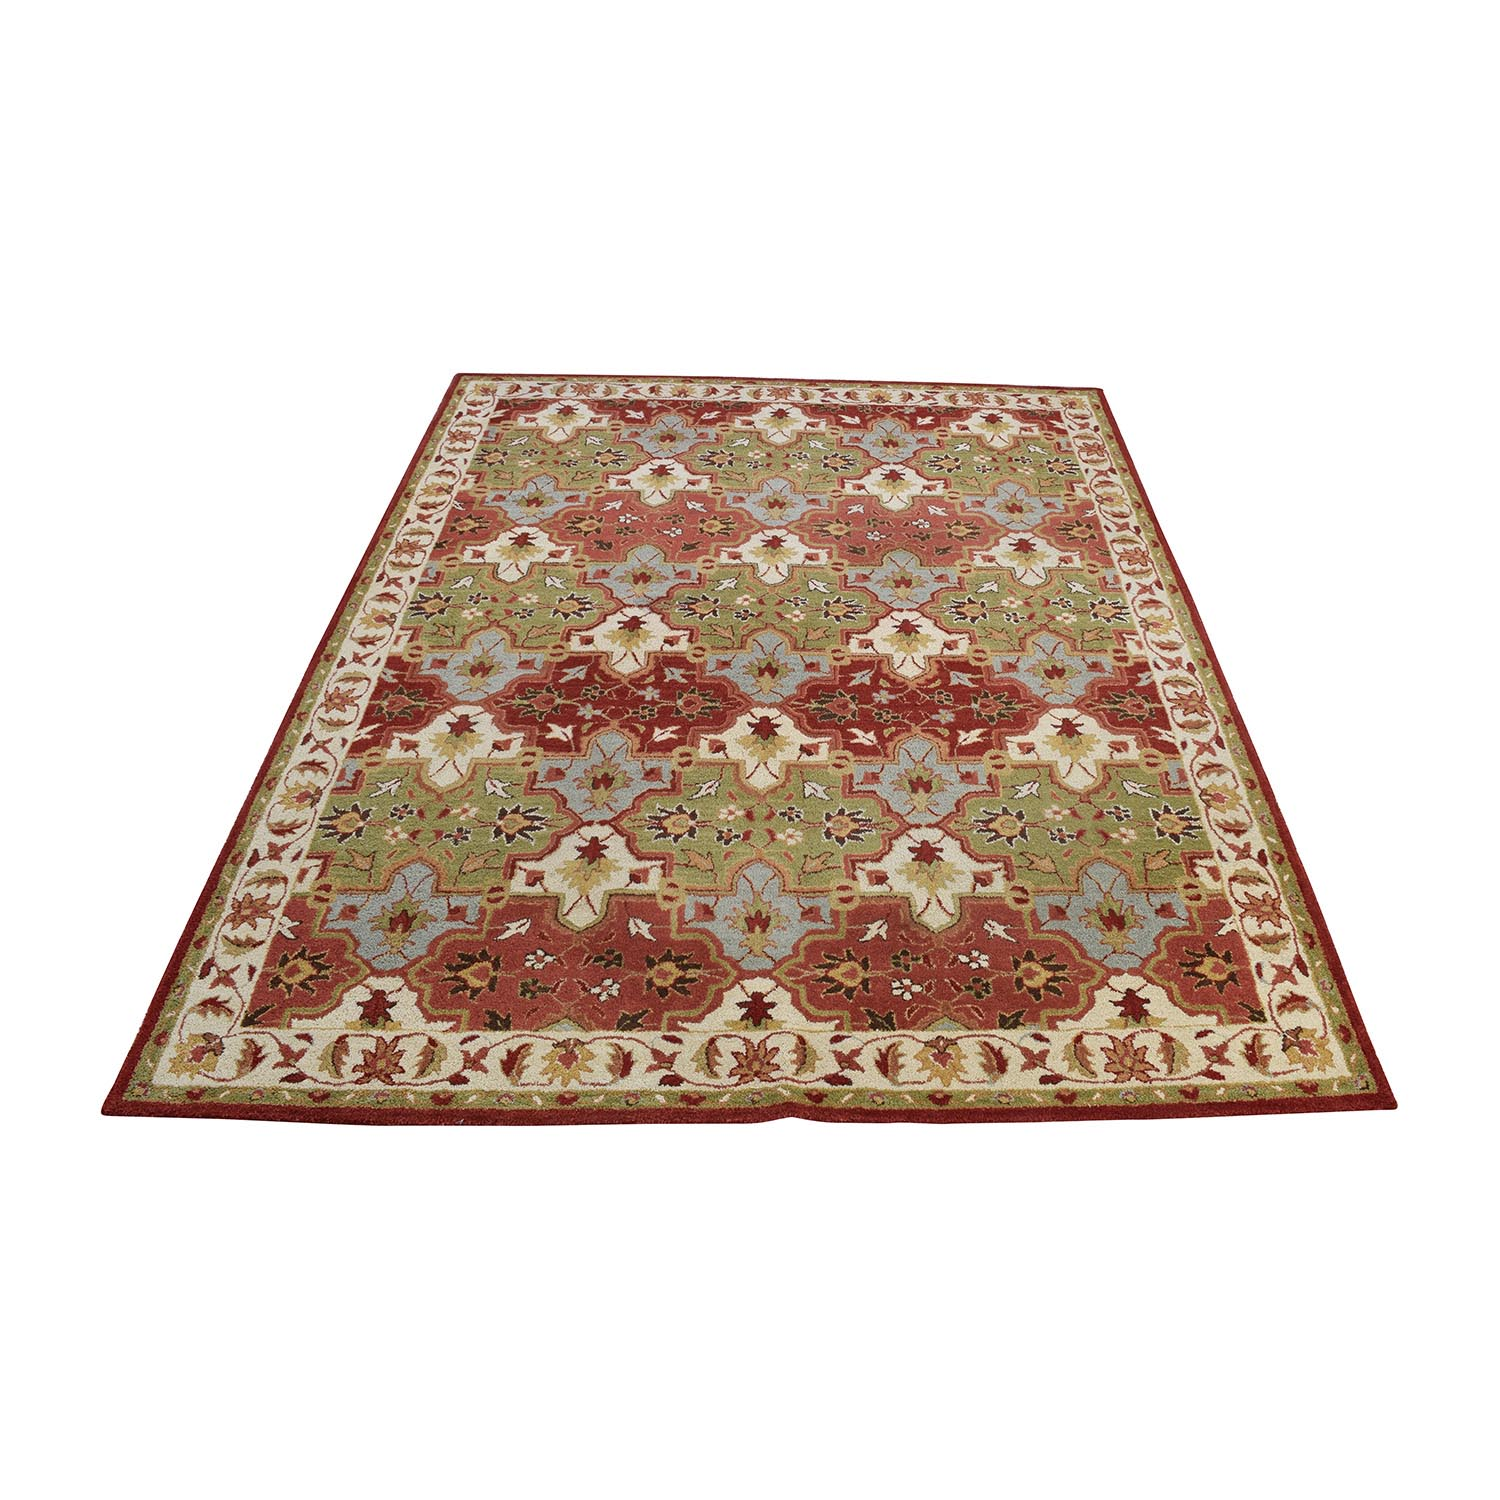 Pottery Barn Persian Patterned Rug Pottery Barn